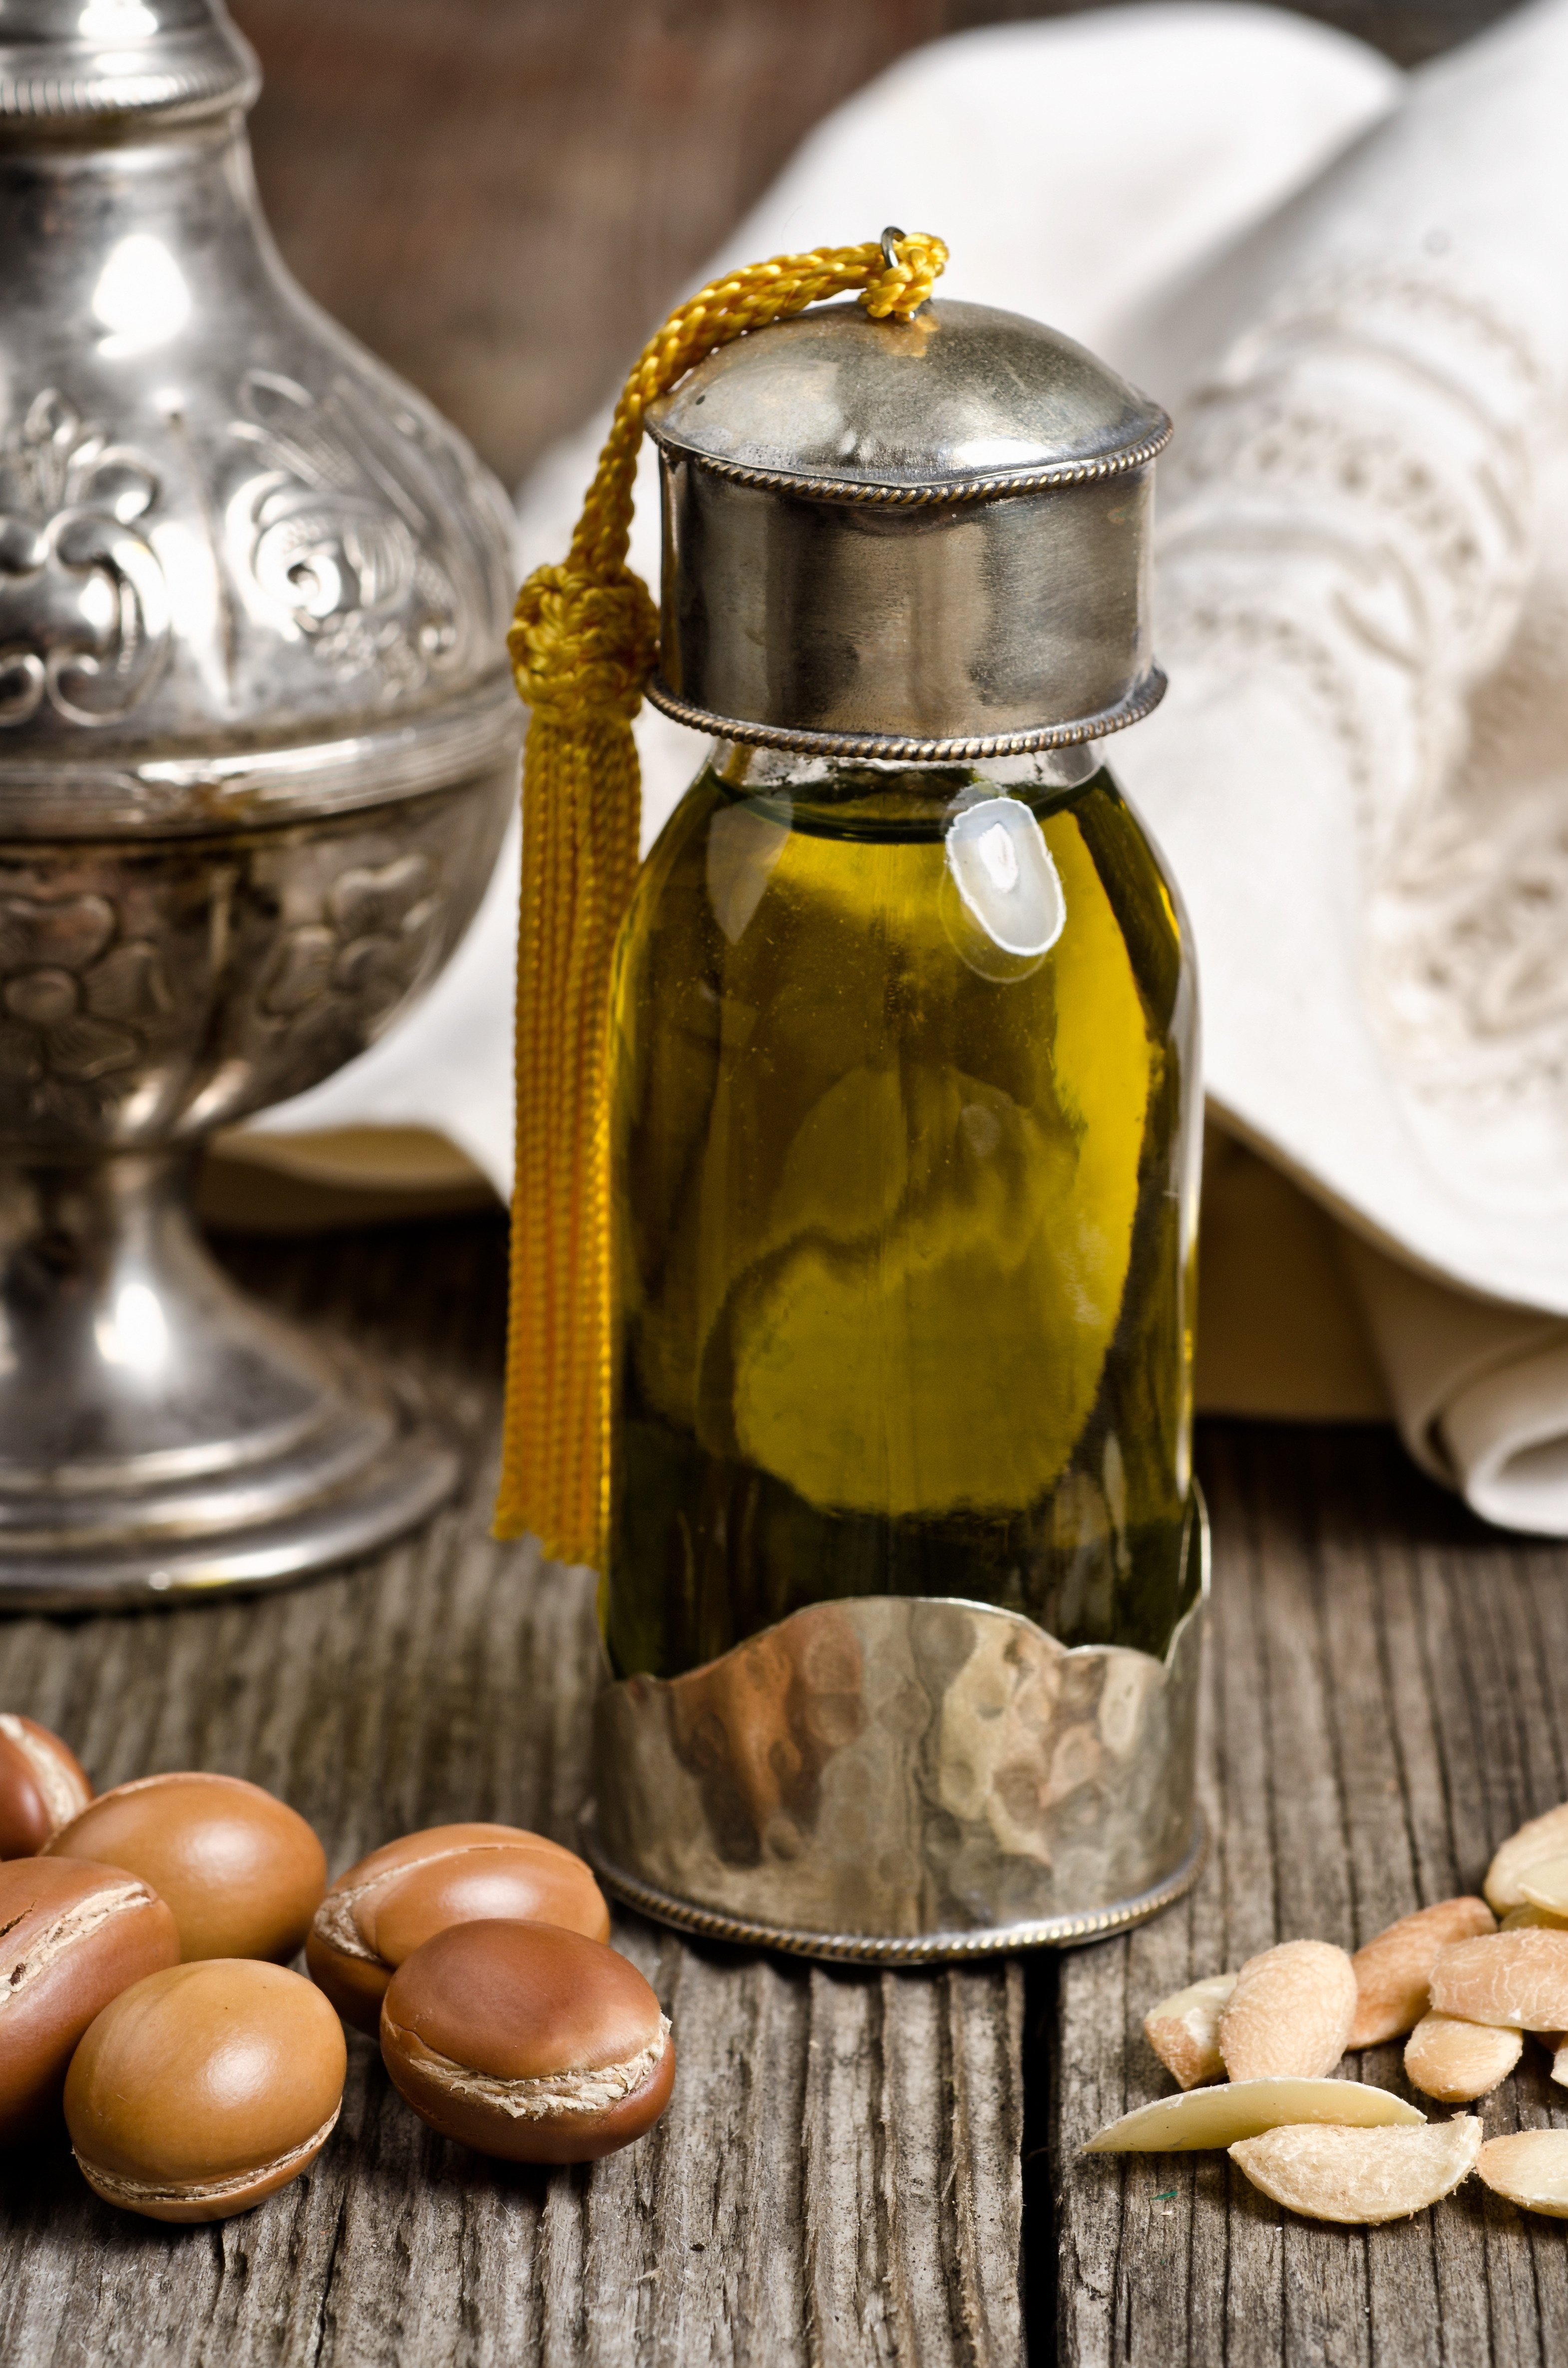 Argan oil for Haircare and skincare treatment